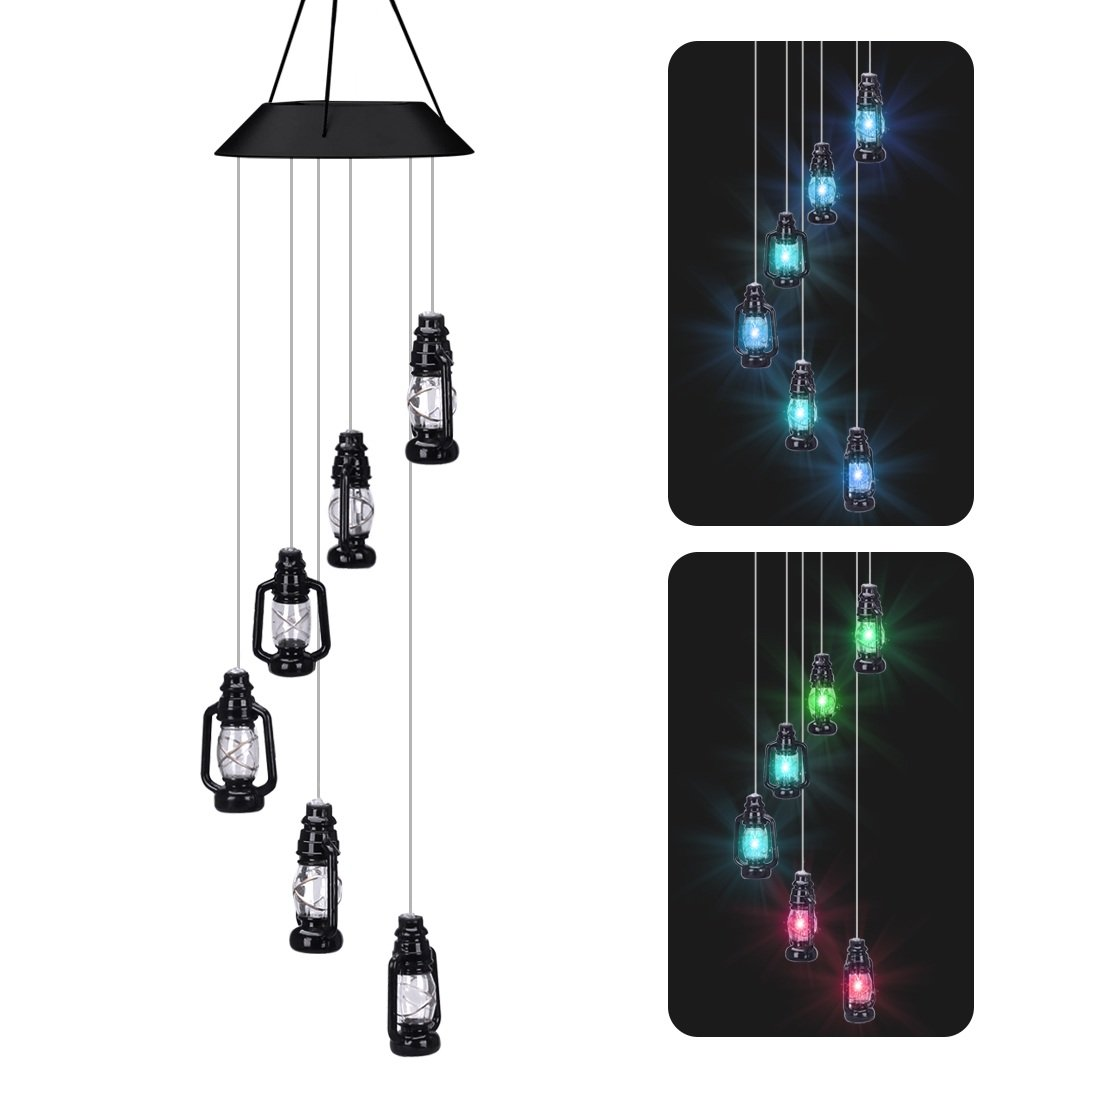 LUCKYDIY LED Solar Wind Chime, Changing Color Waterproof Six Lantern Lamp Wind Chimes For Home Party Night Garden Decoration